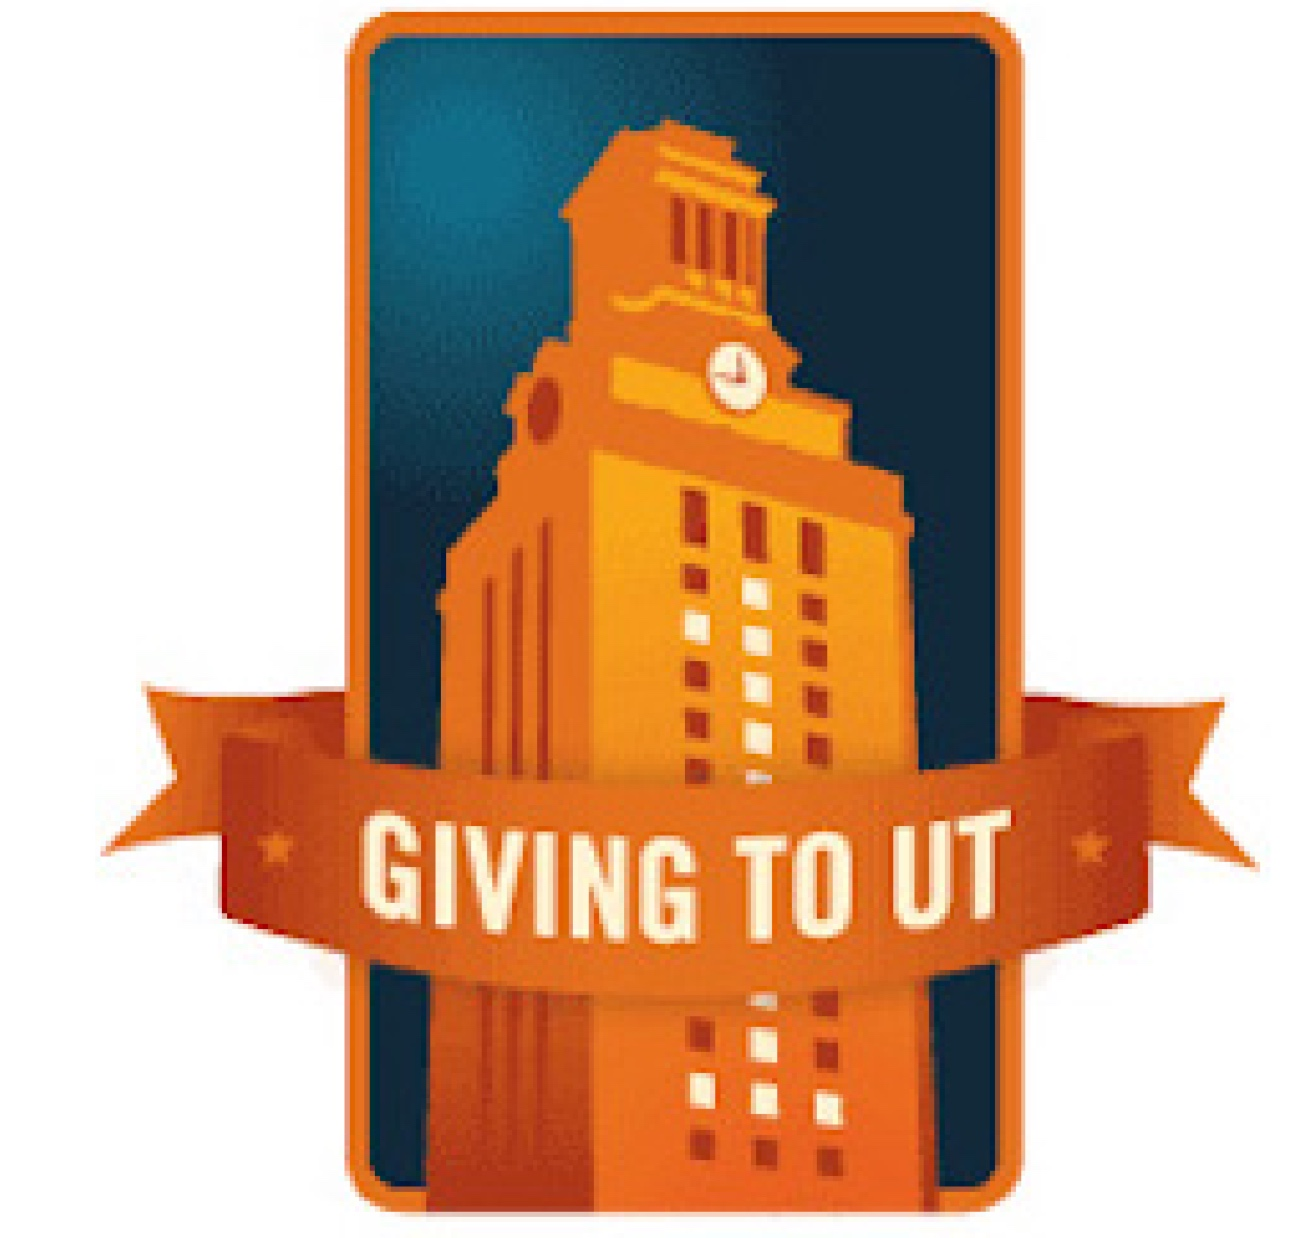 "Illustrated logo of the UT tower in orange on a dark blue background, crossed by a banner reading ""Giving to UT"""